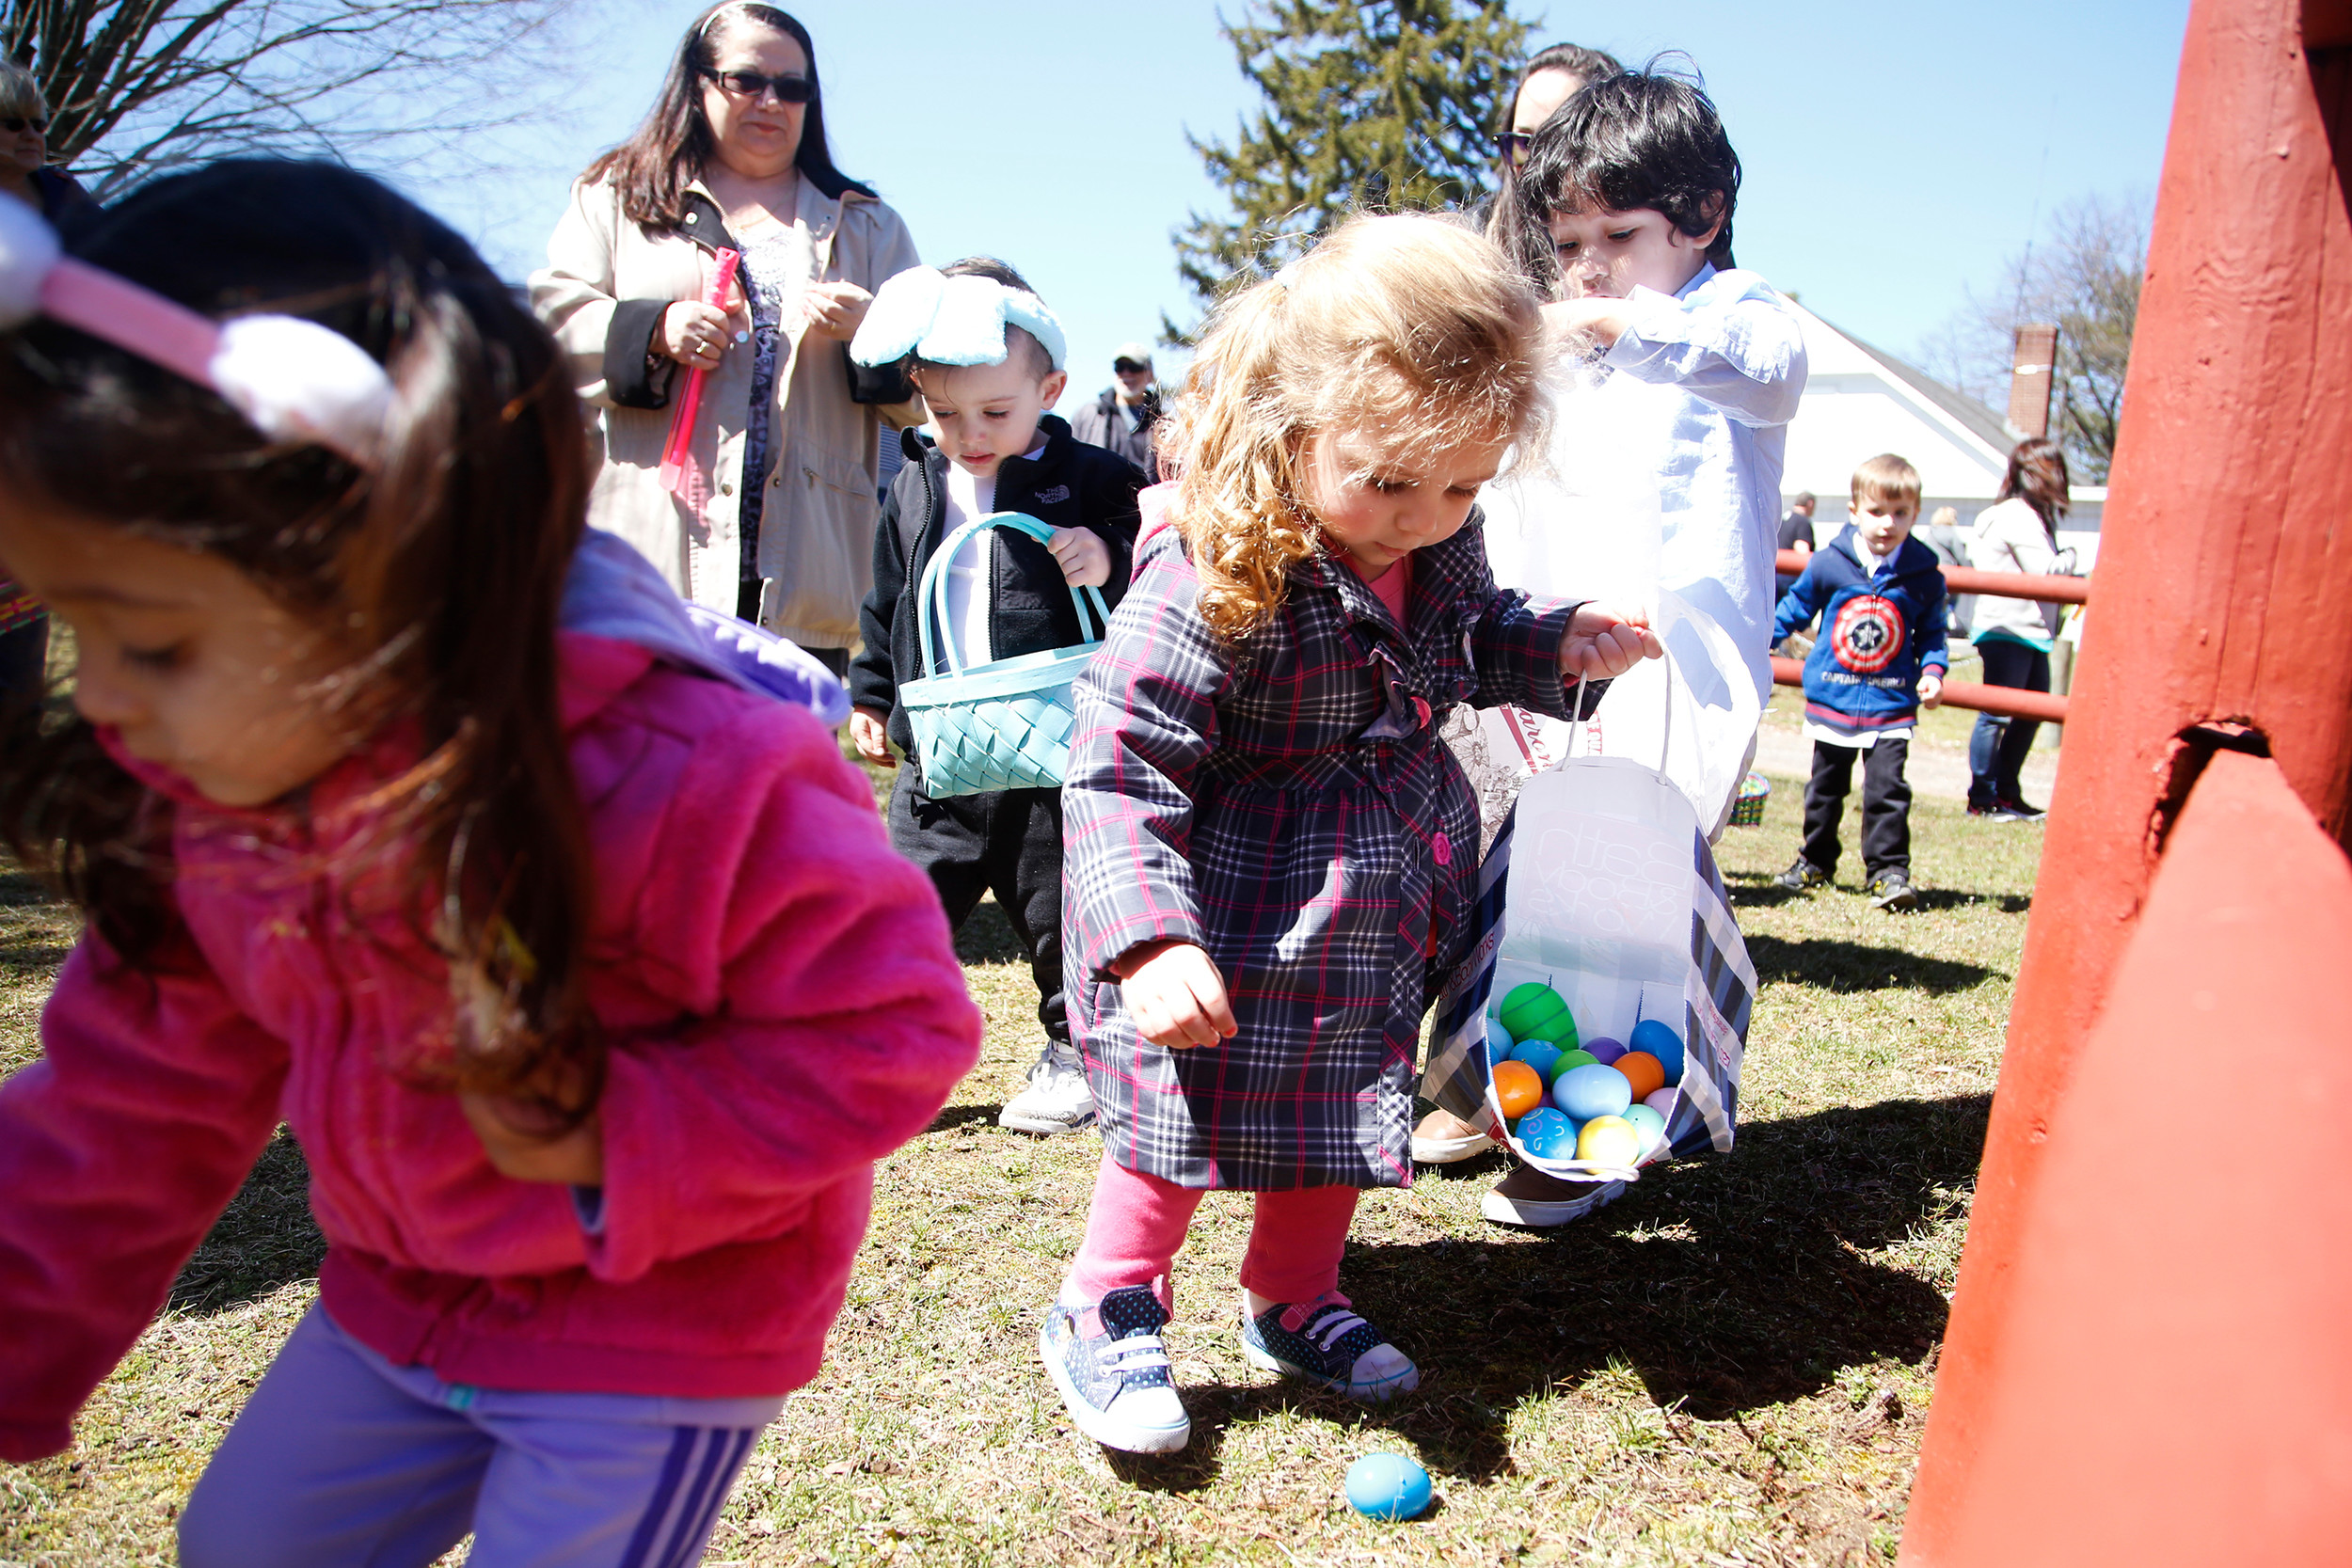 Morgan Zizzo, 2, found a blue egg for her basket.